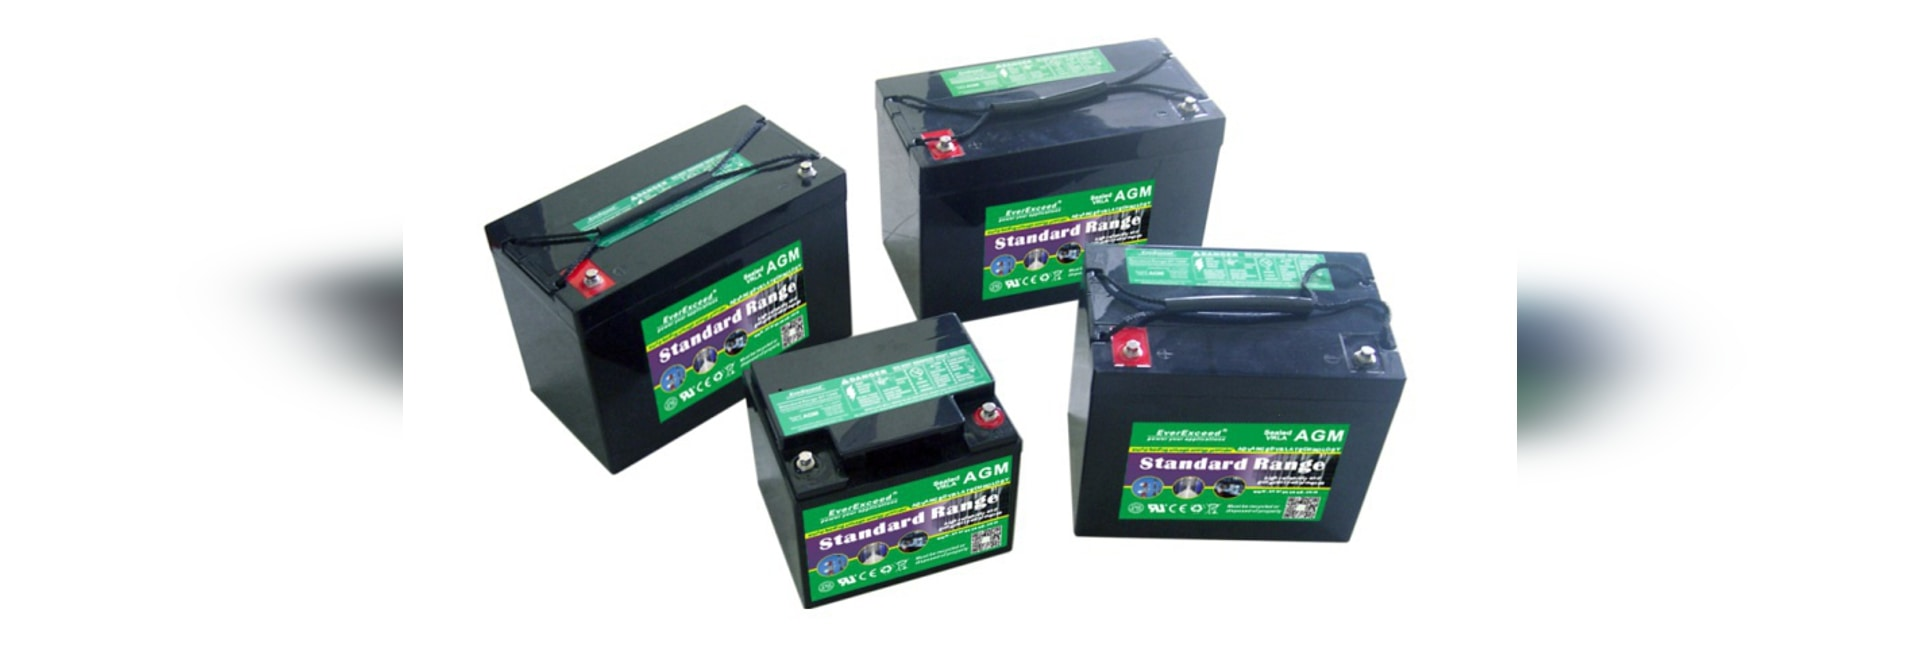 AGM battery / VRLA / gas recombination / CE